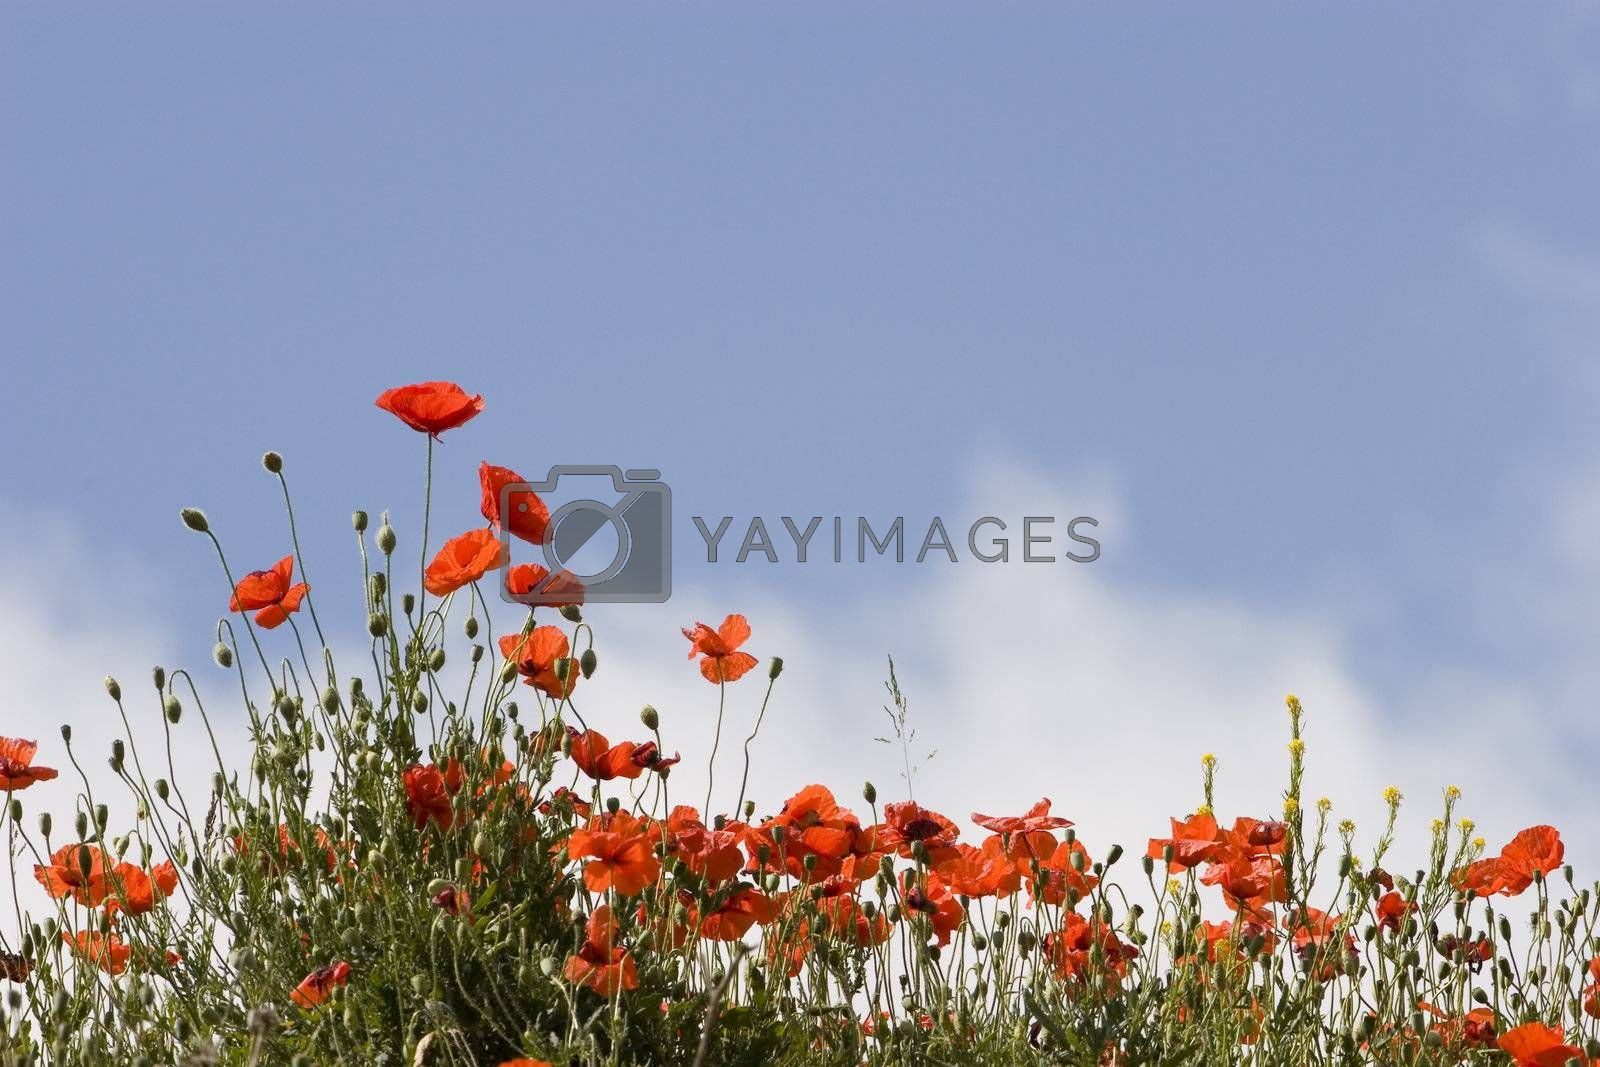 Poppies against blue sky with clouds